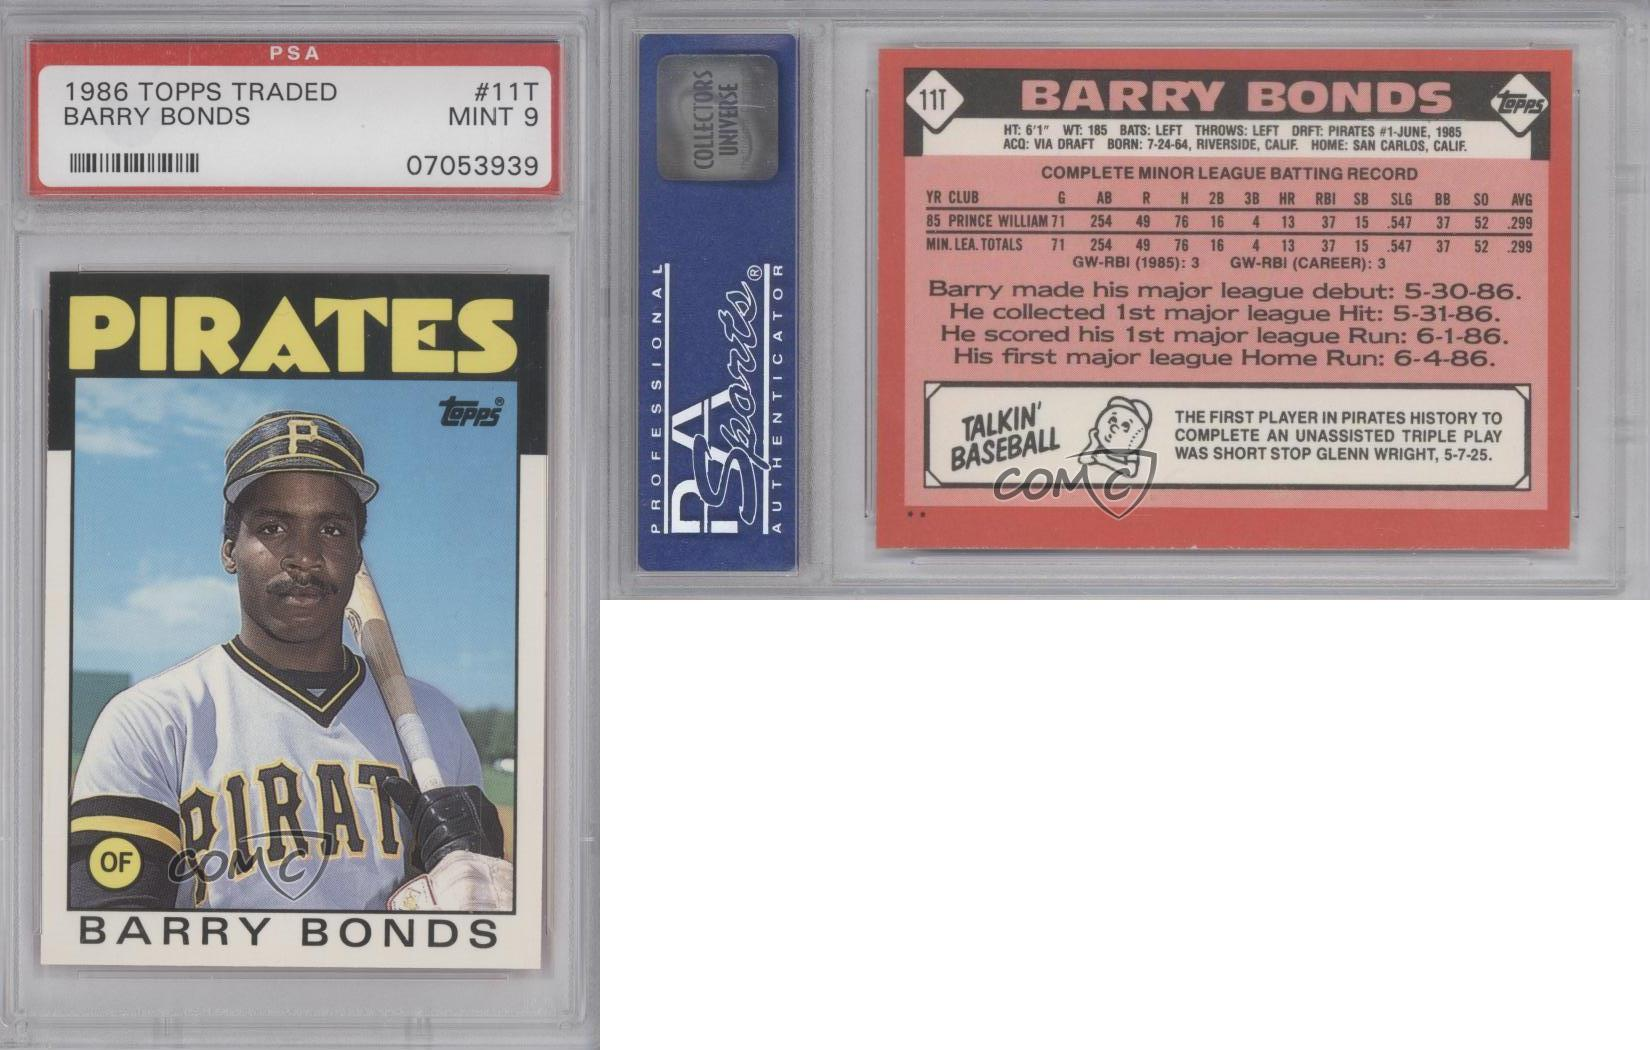 1986 Topps Traded 11t Barry Bonds Psa 9 Pittsburgh